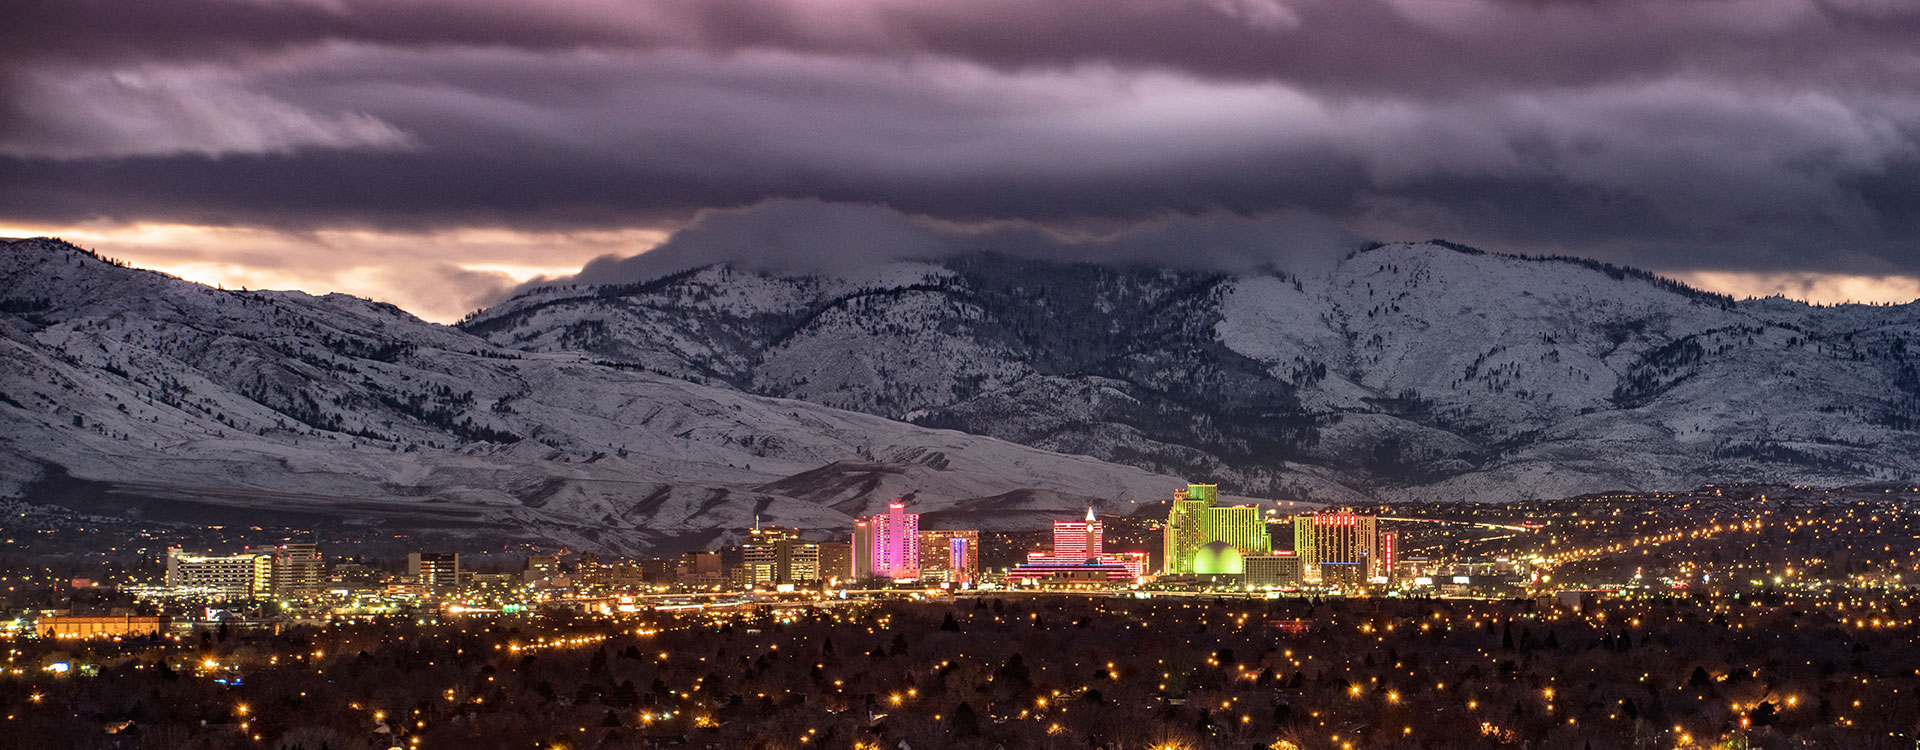 Overview of Reno in the Winter at night